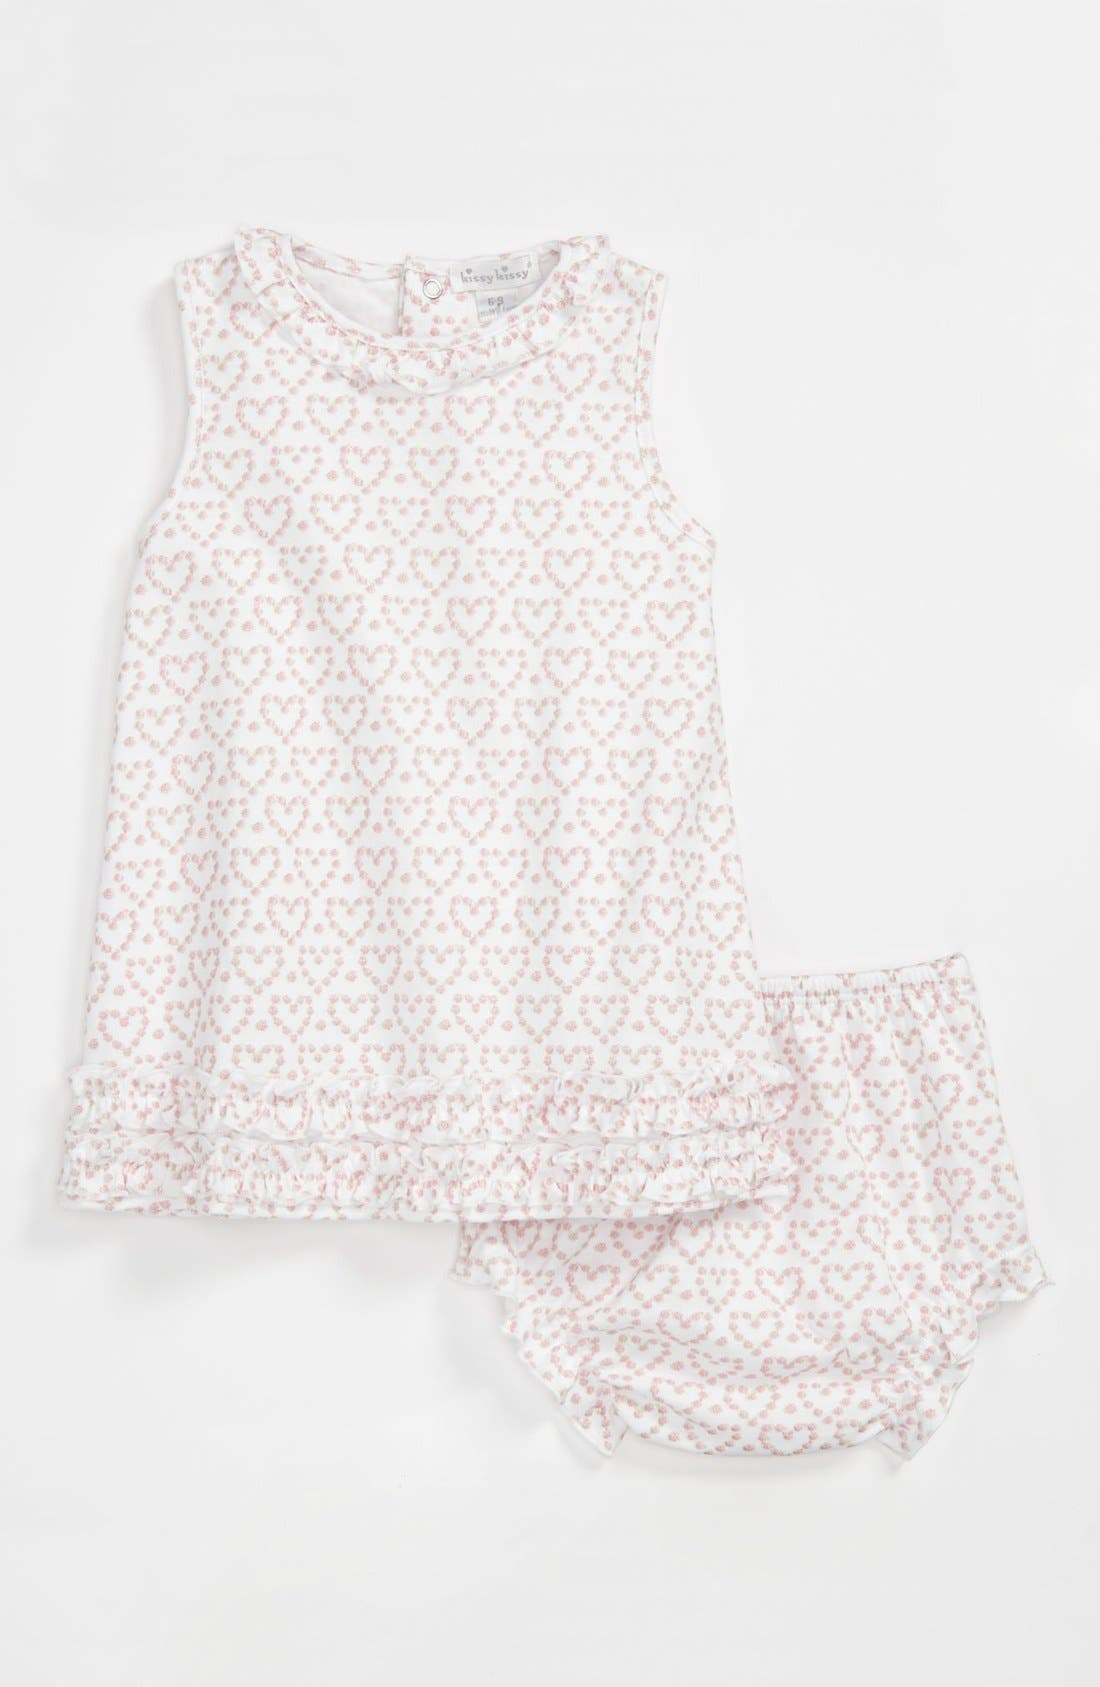 Alternate Image 1 Selected - Kissy Kissy Sleeveless Dress & Bloomers (Baby)